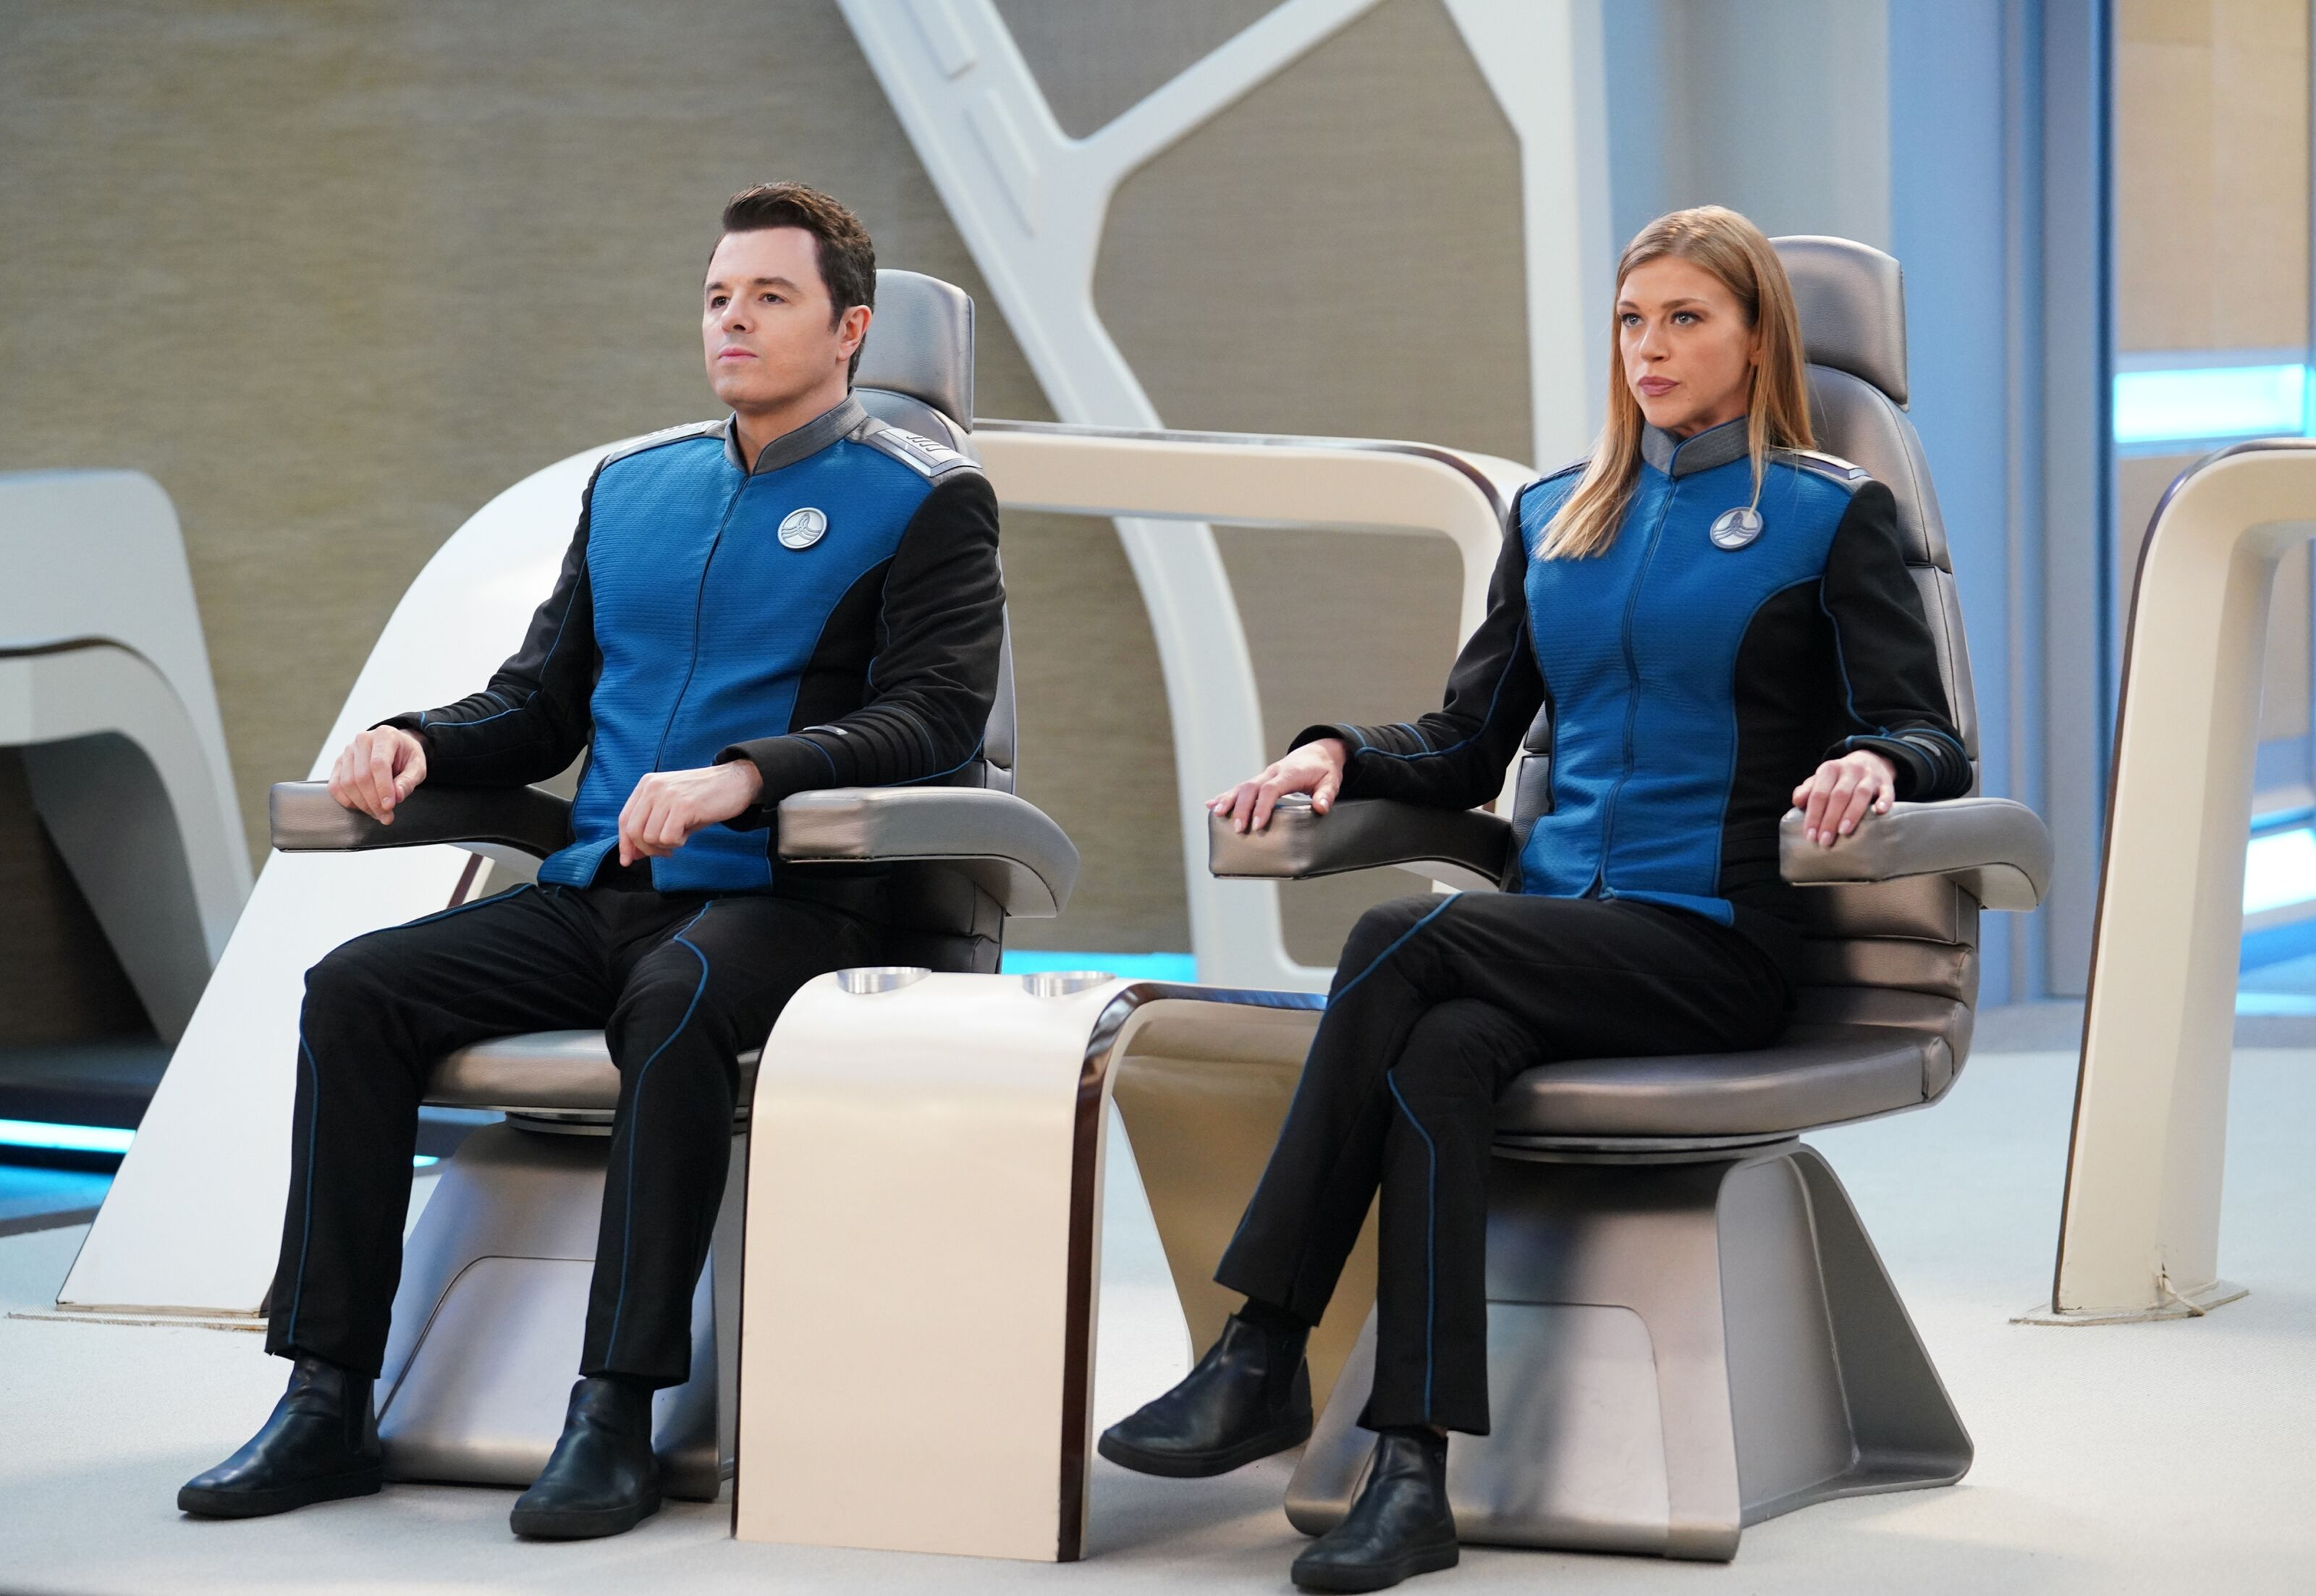 The Orville Season 2 available on DVD in December 2019